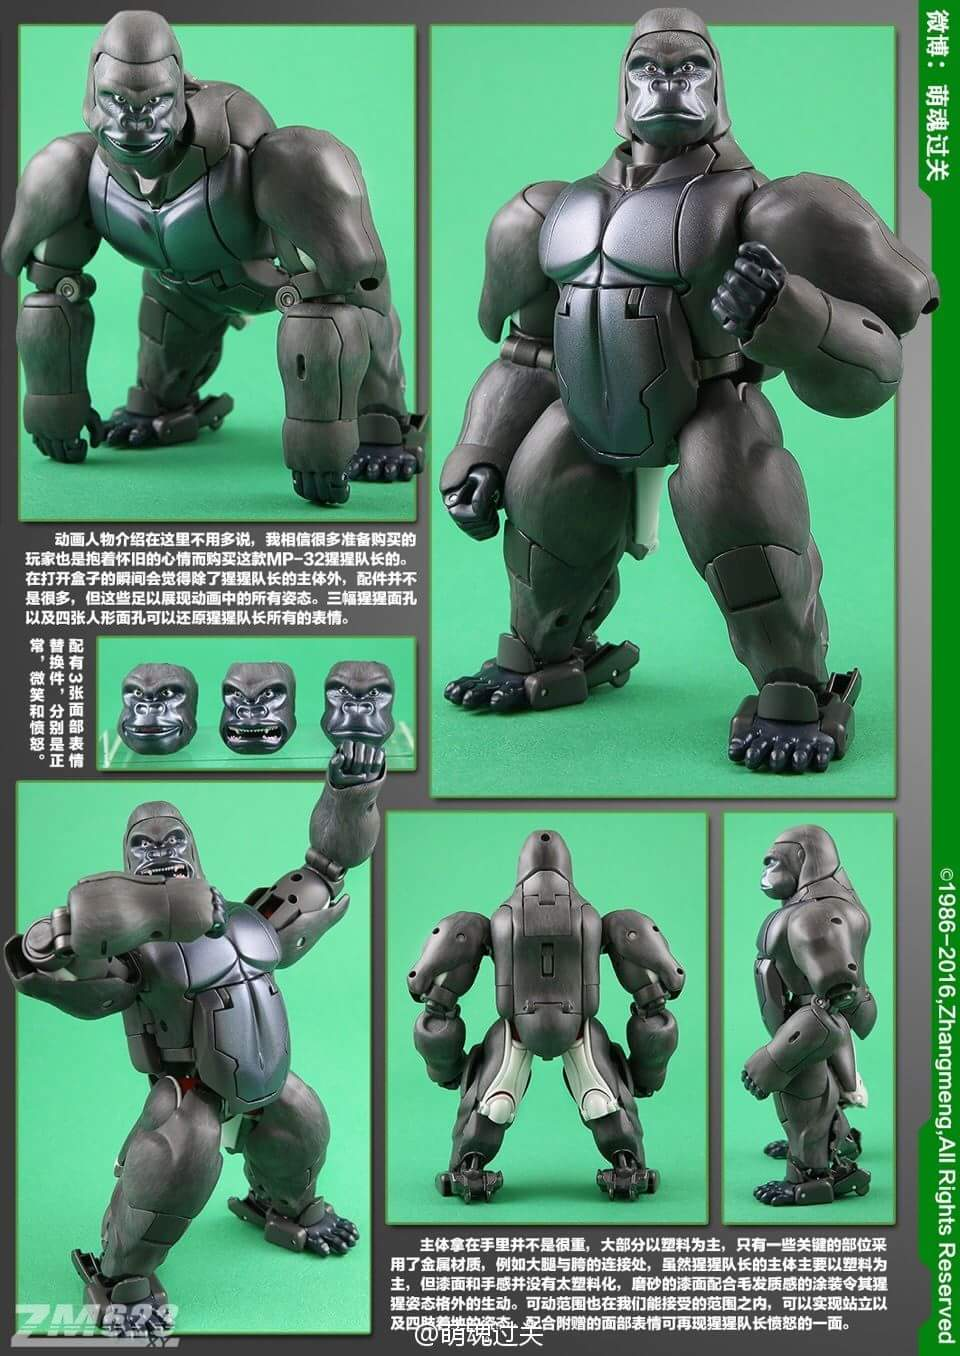 [Masterpiece] MP-32, MP-38 Optimus Primal et MP-38+ Burning Convoy (Beast Wars) - Page 3 PXmzLfzS